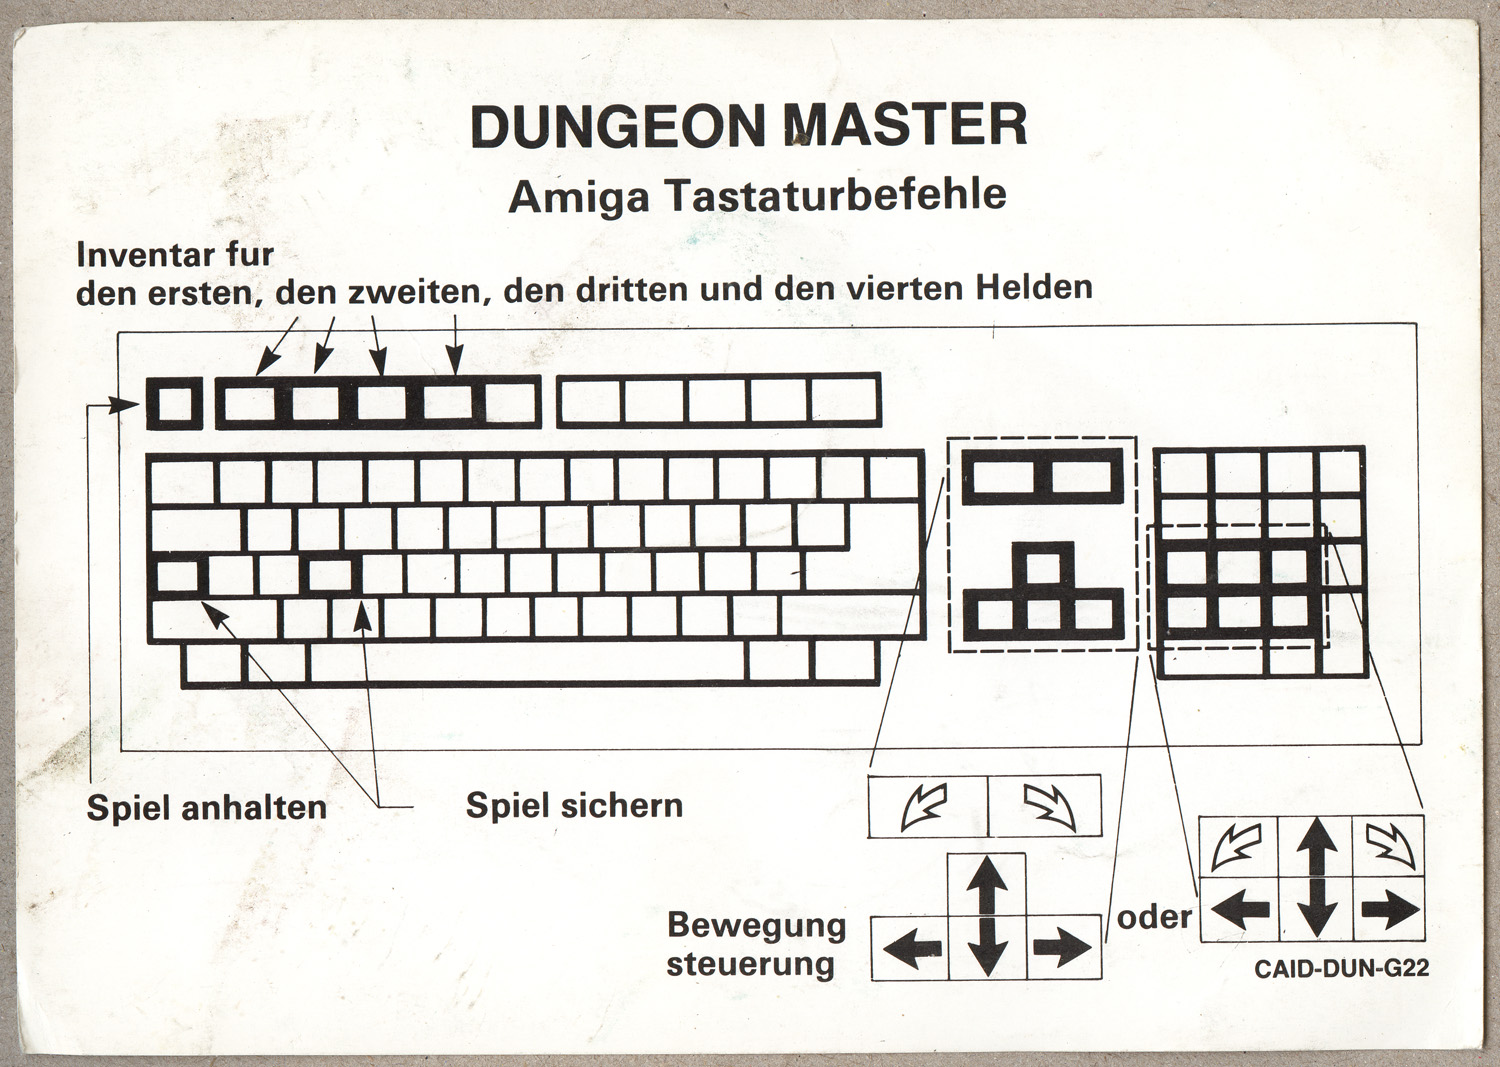 Dungeon Master for Amiga (English, Germany) - KeyboardControls